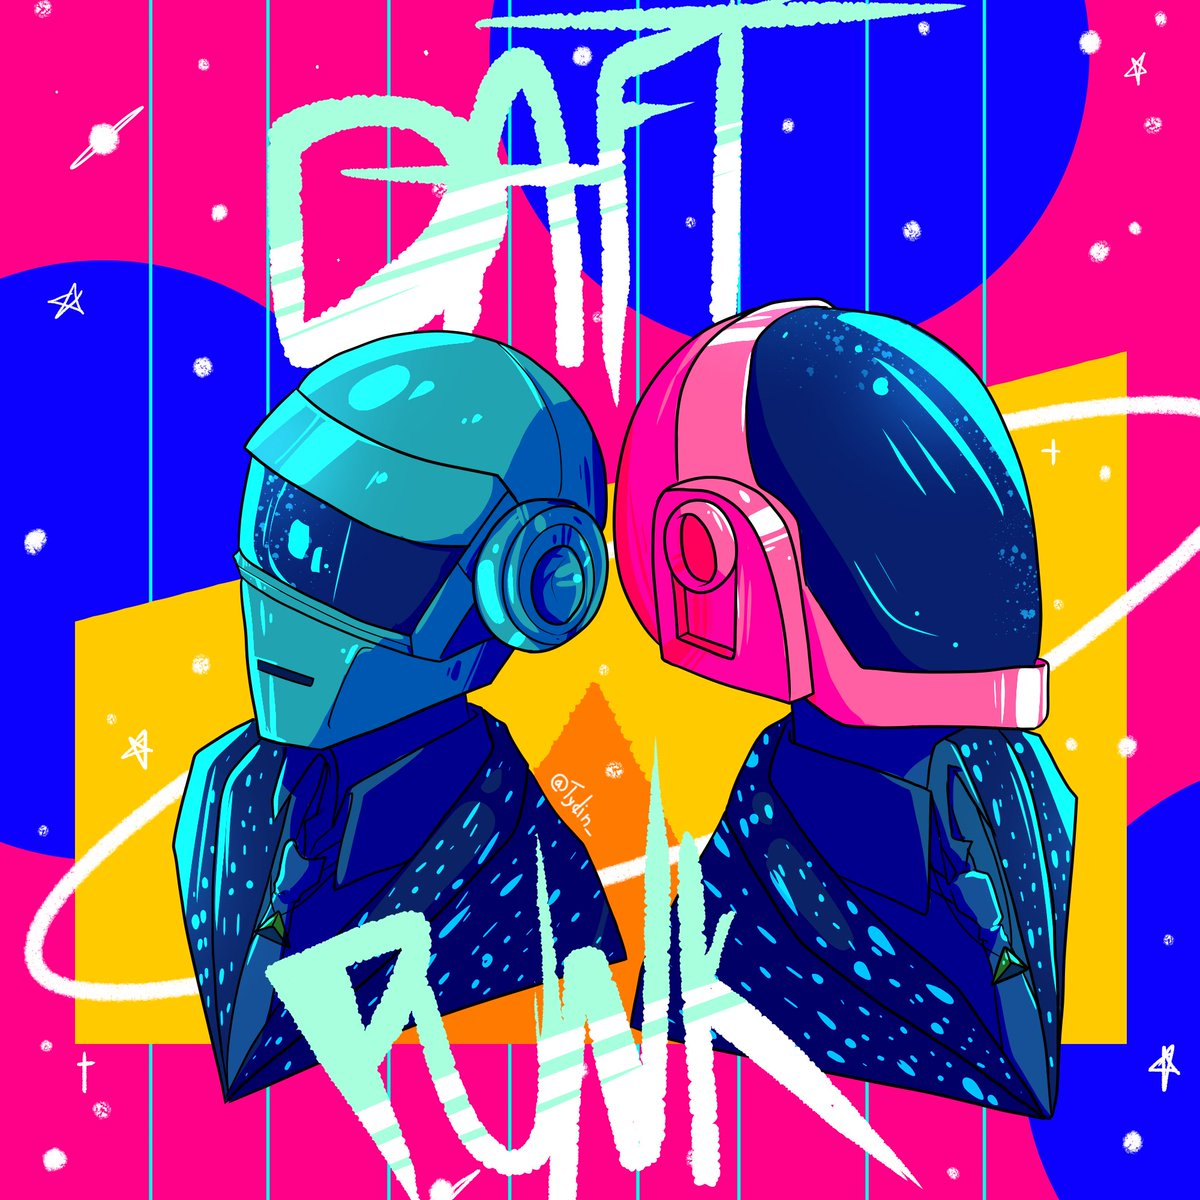 Thank you for the amazing music  - #daftpunk #daftpunktribute